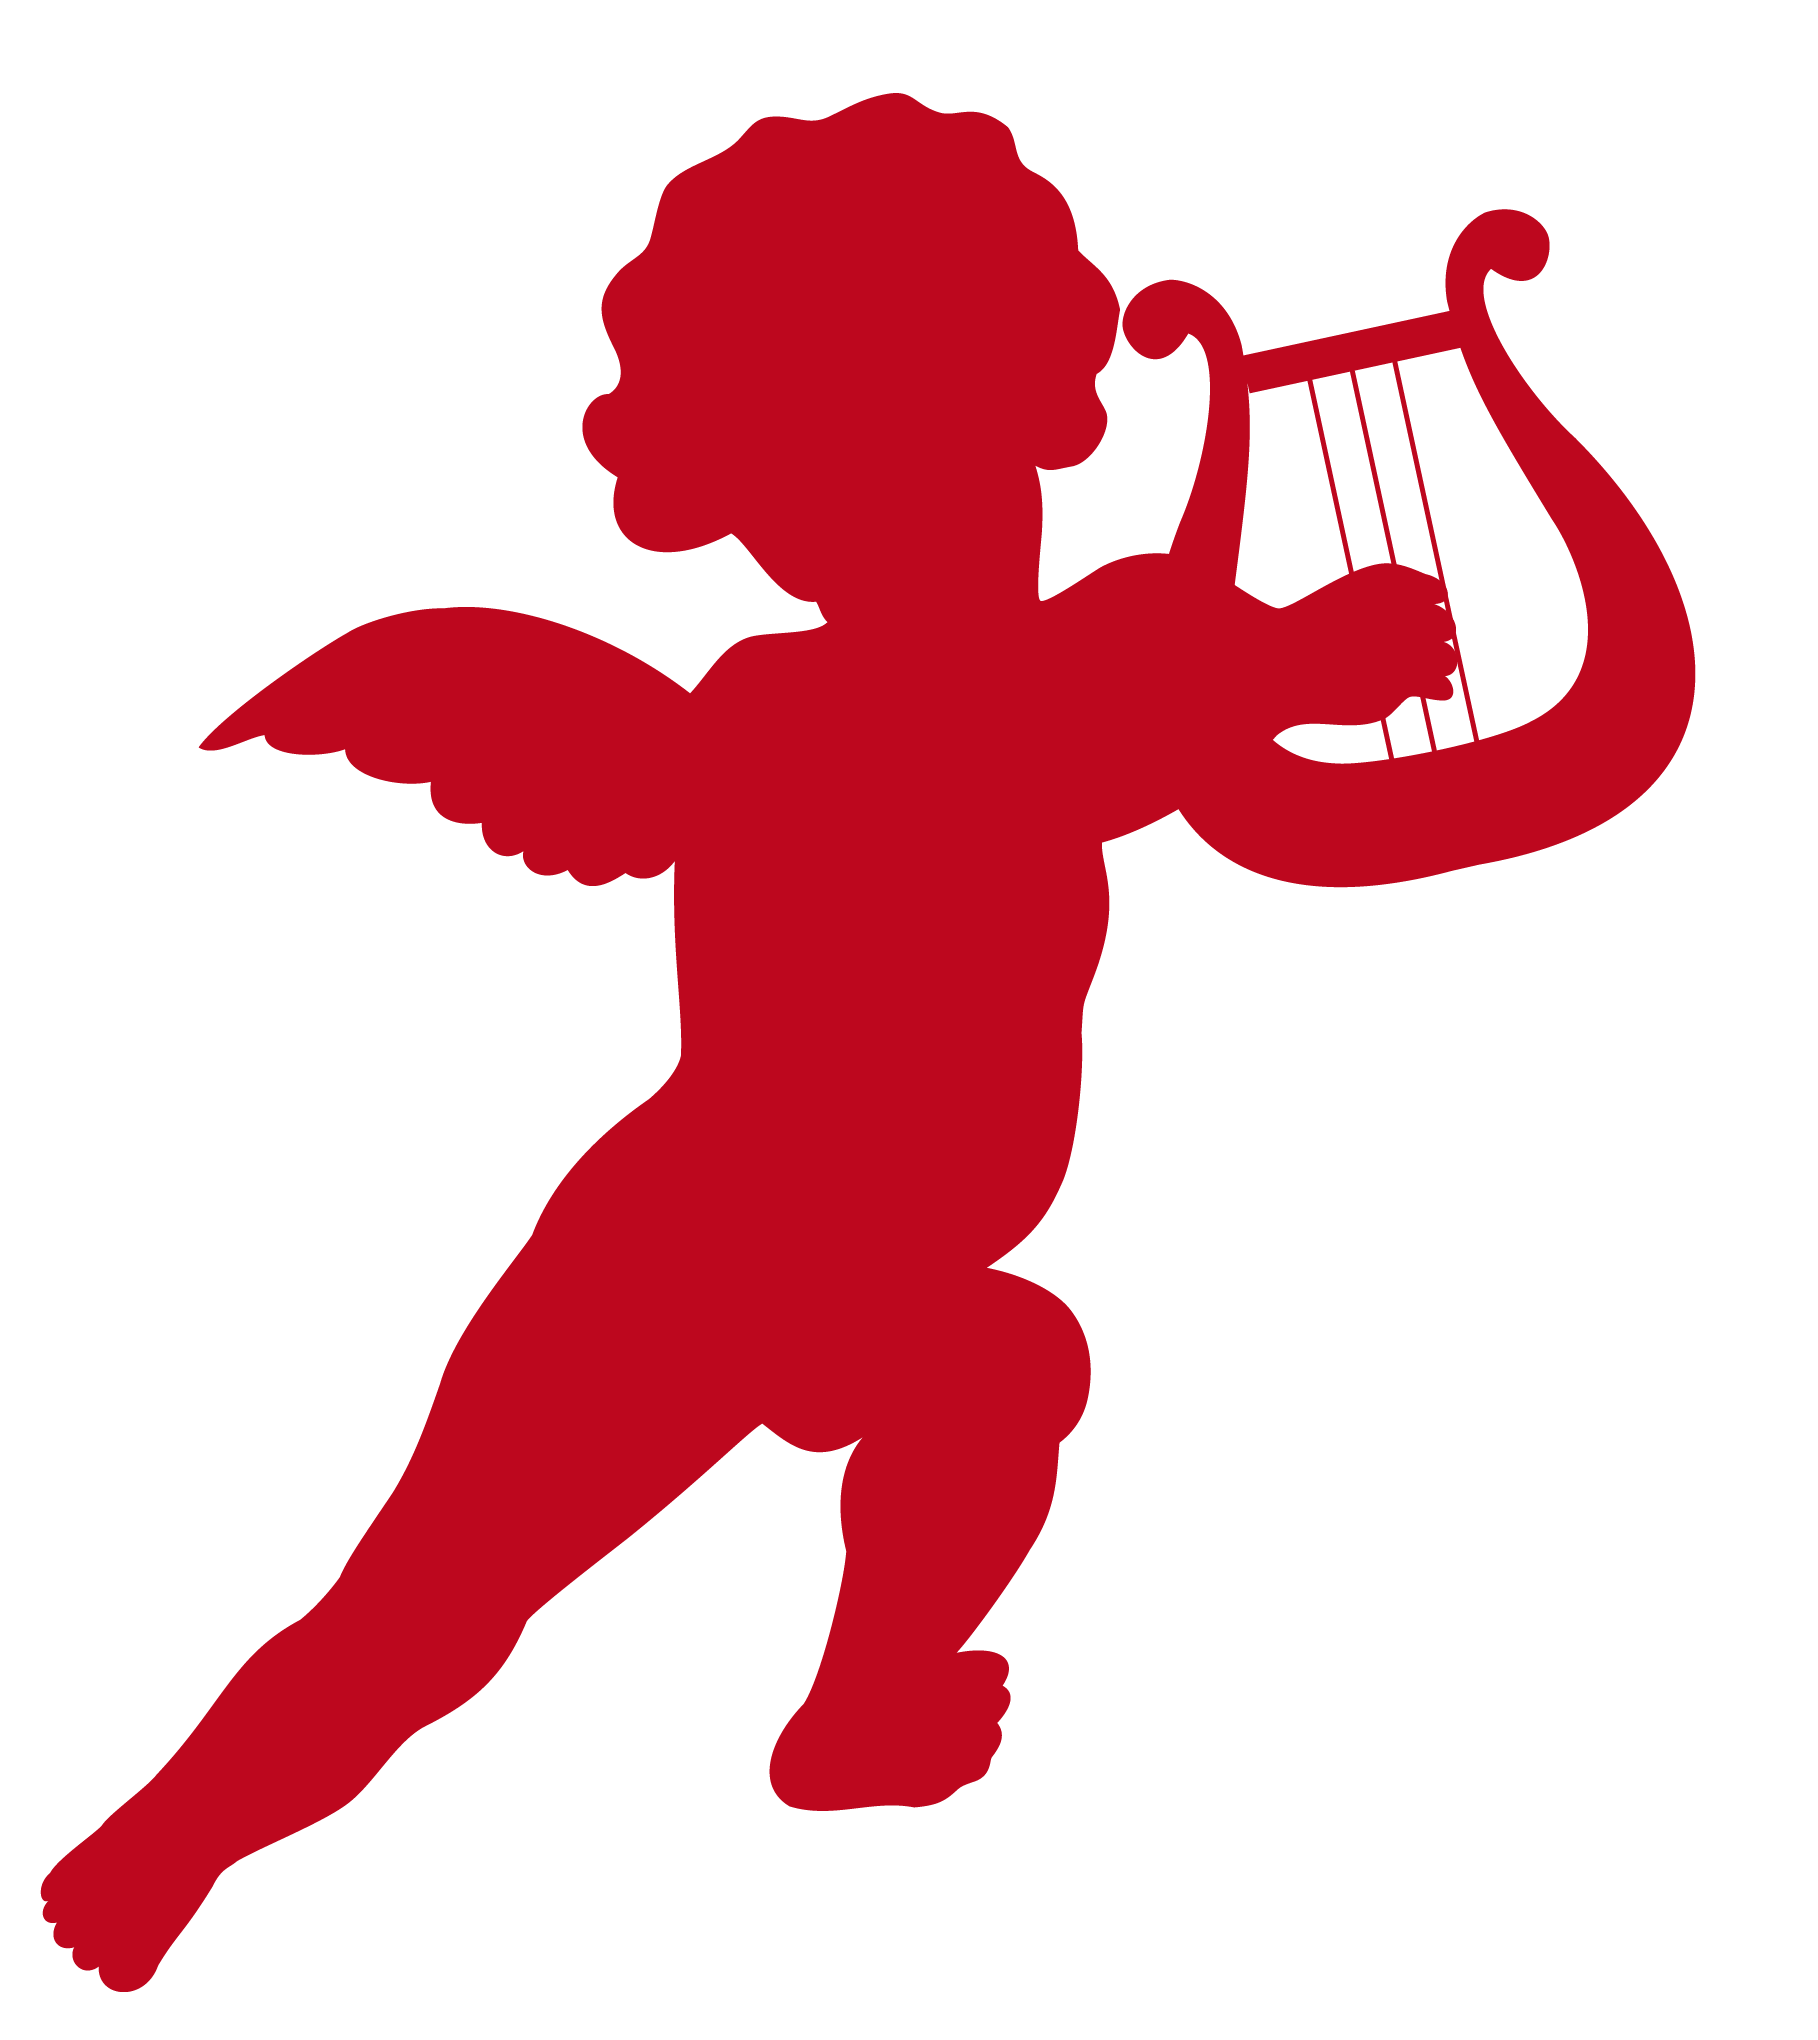 medium resolution of cupid with harp transparent png clip art image